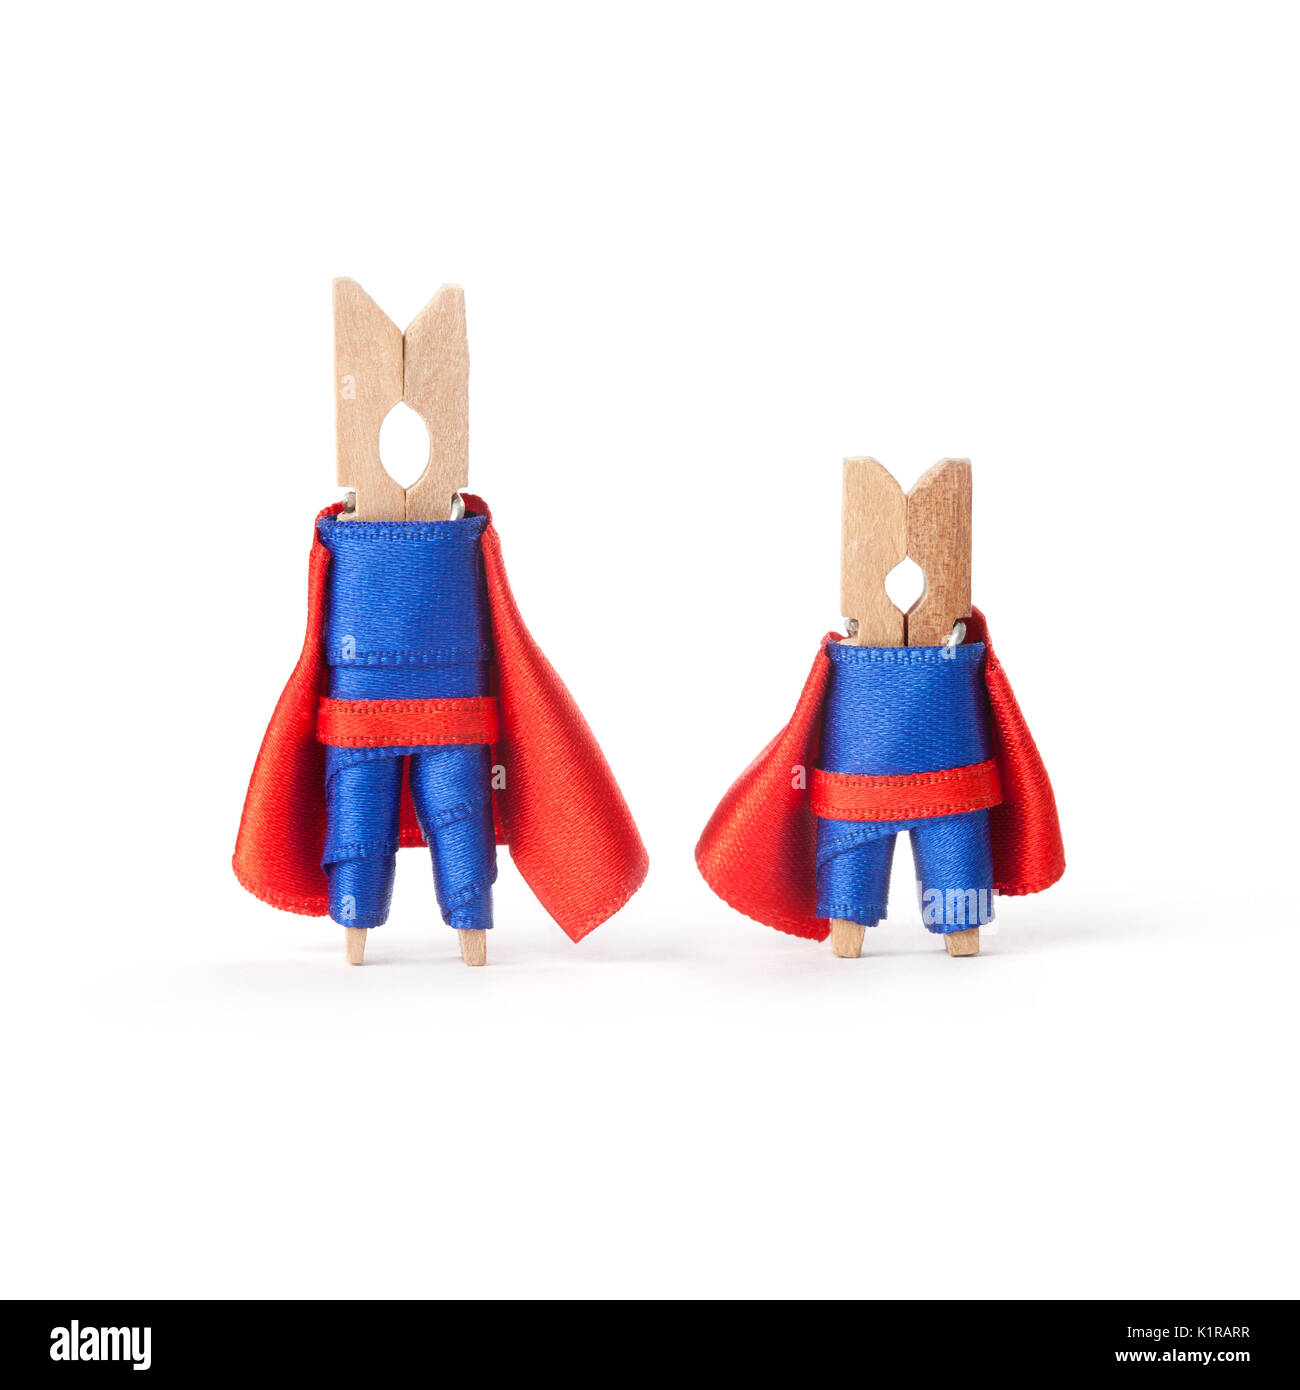 Teamwork, successful business people concept. Superheroes clothespins. white background - Stock Image